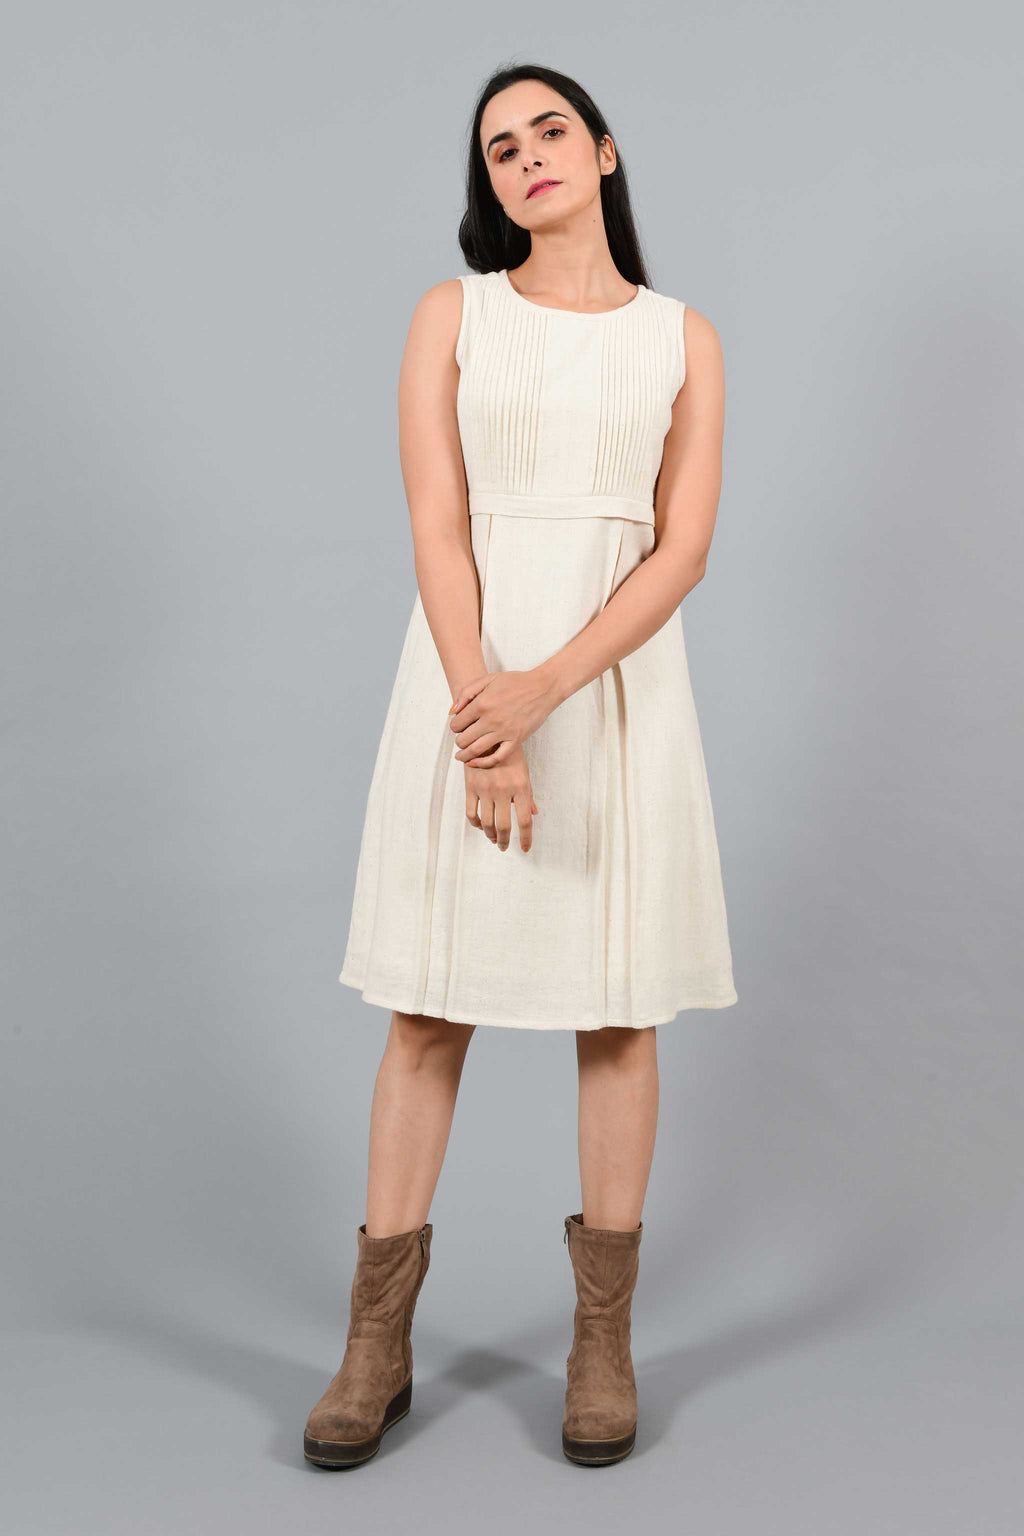 Stylised front pose of an Indian female womenswear fashion model in an off-white Cashmere Cotton Pleated Dress made using handspun and handwoven khadi cotton by Cotton Rack.